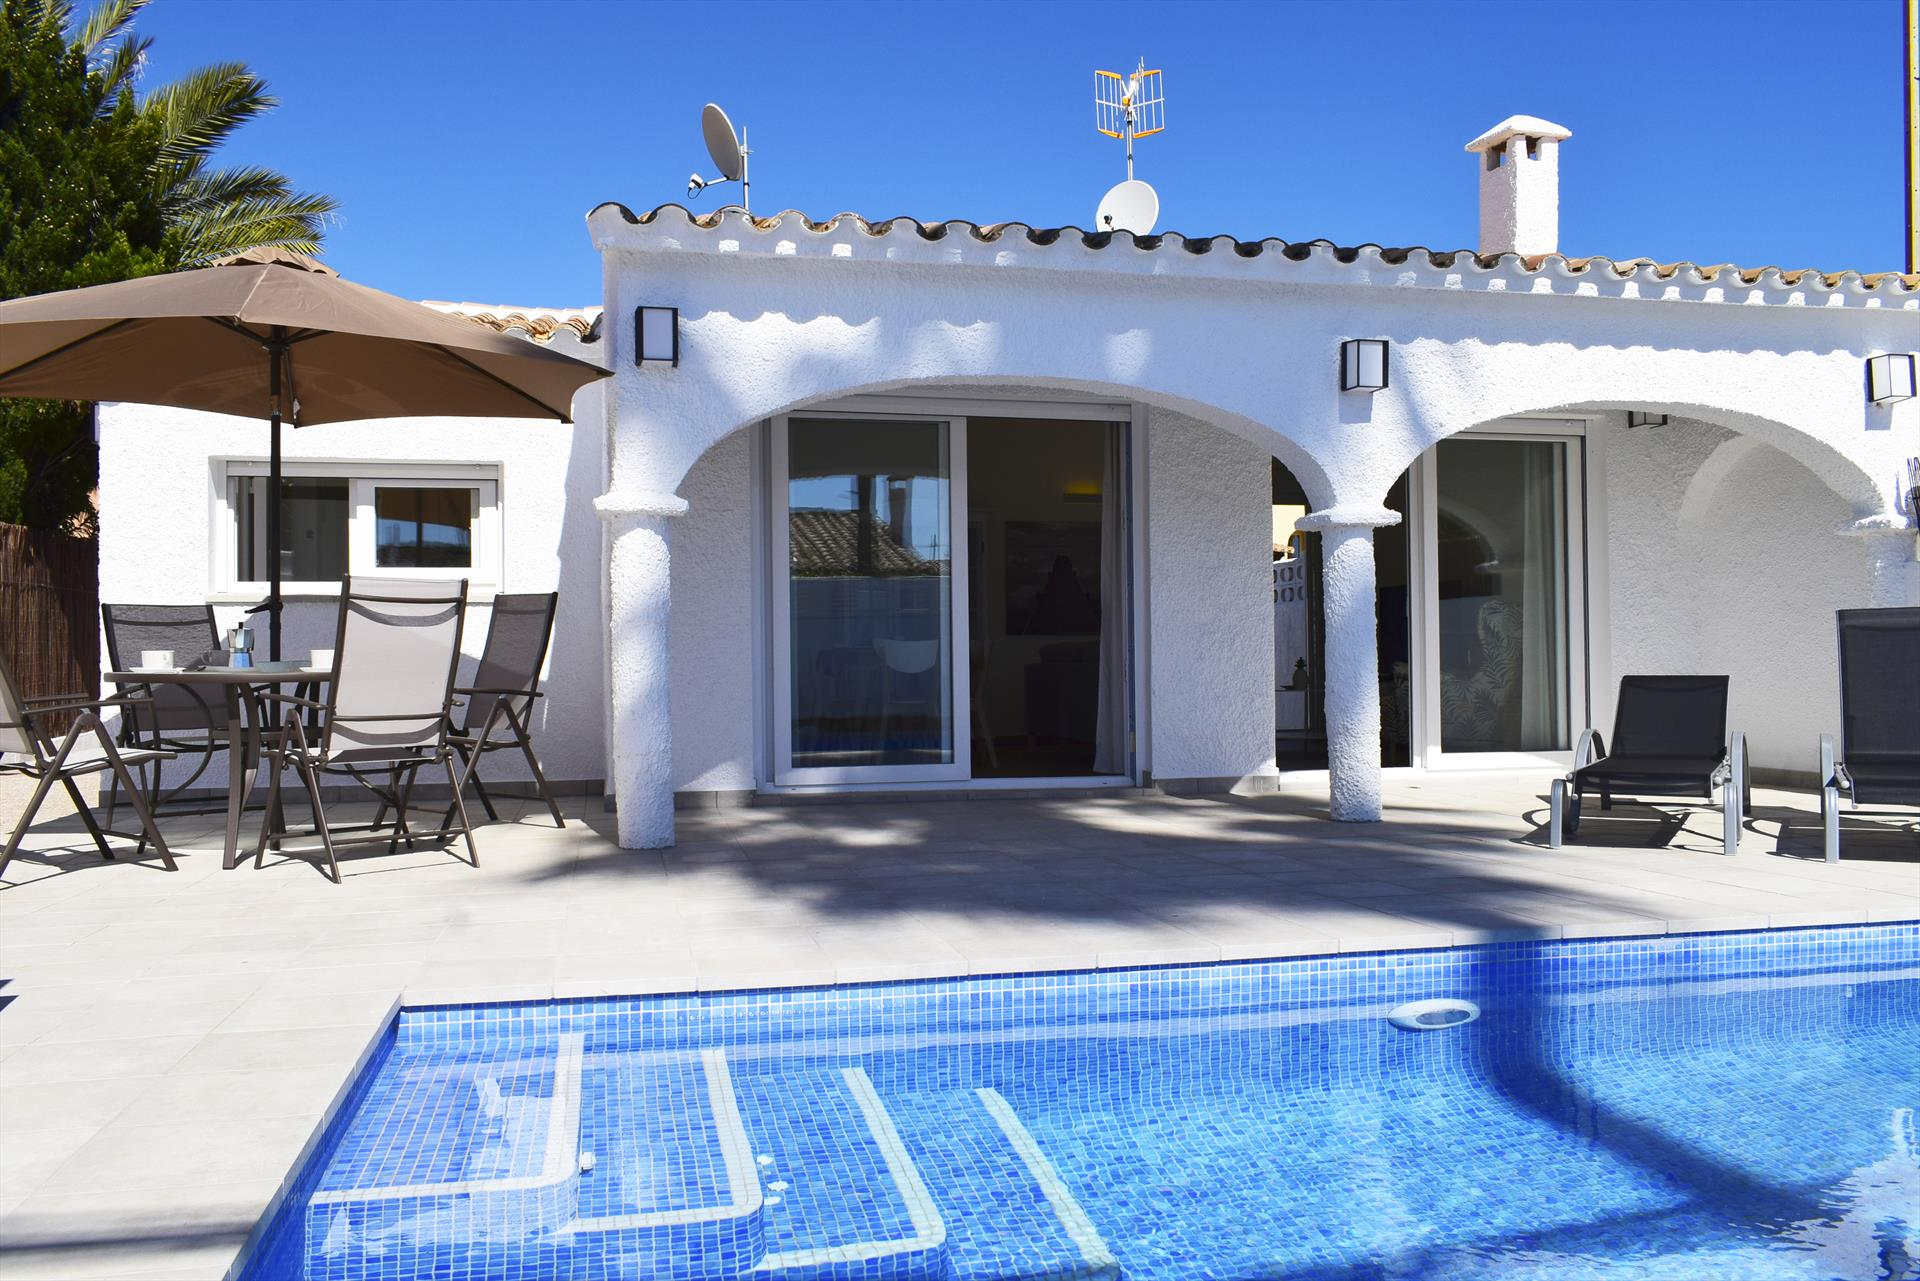 CH3200 Bacalla Piscina Privada Les Marines, Wonderful and cheerful holiday house  with private pool in Denia, on the Costa Blanca, Spain for 6 persons.....